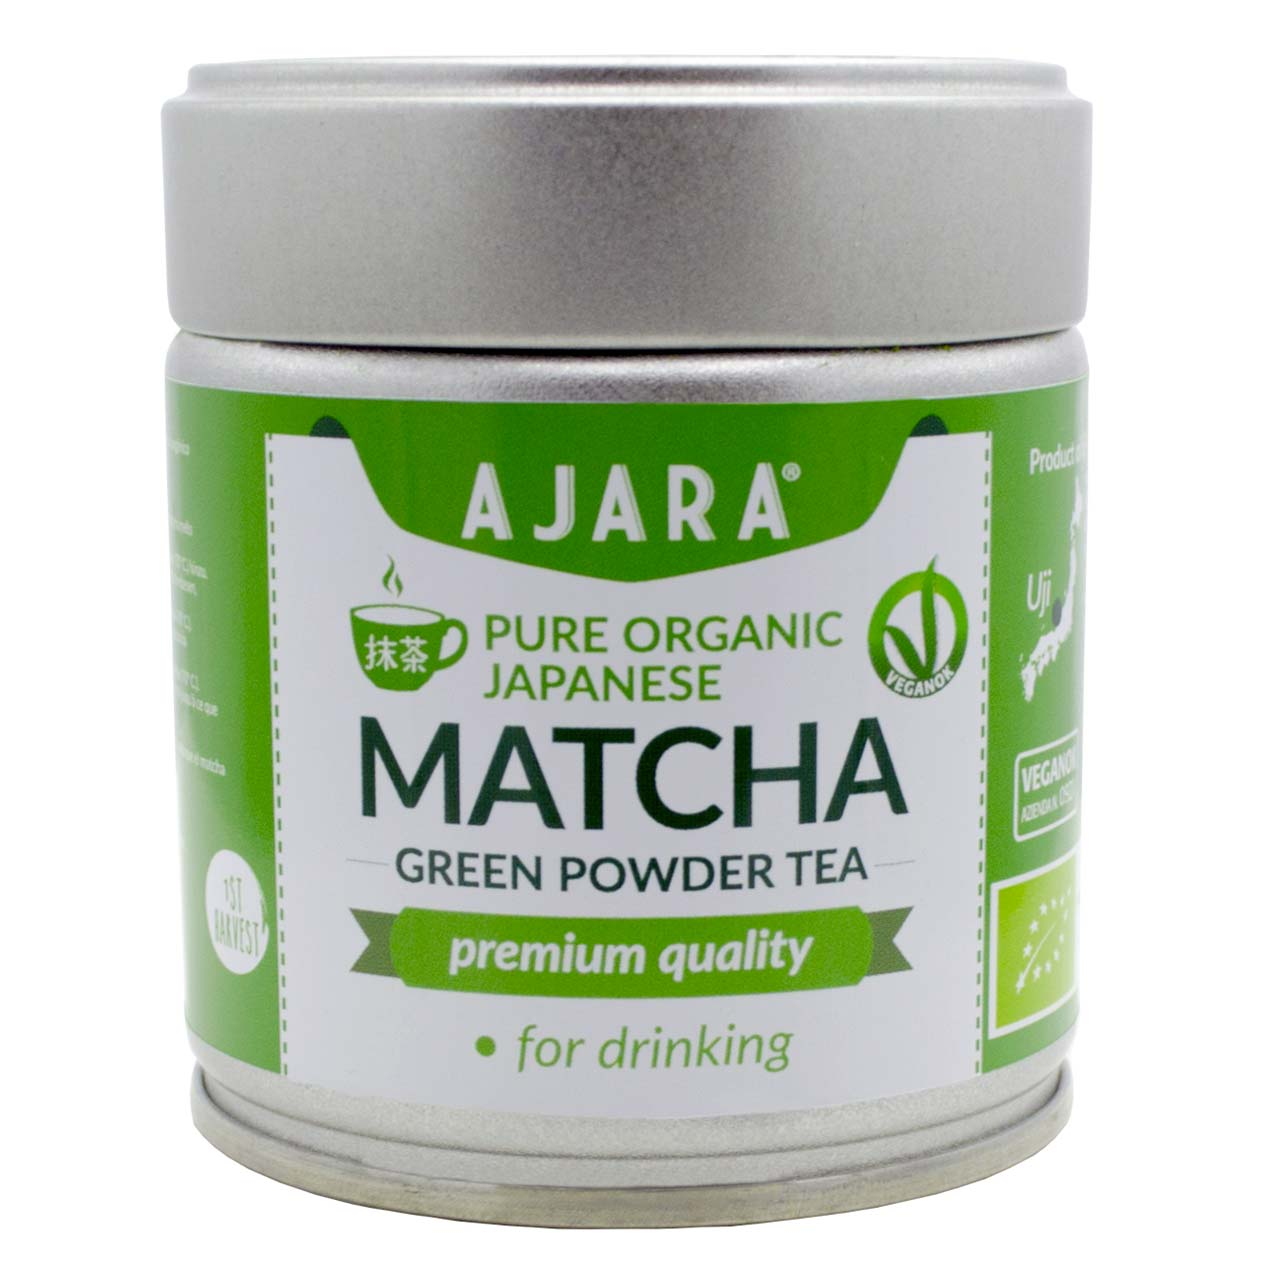 Organic Matcha Green Tea in Japanese powder